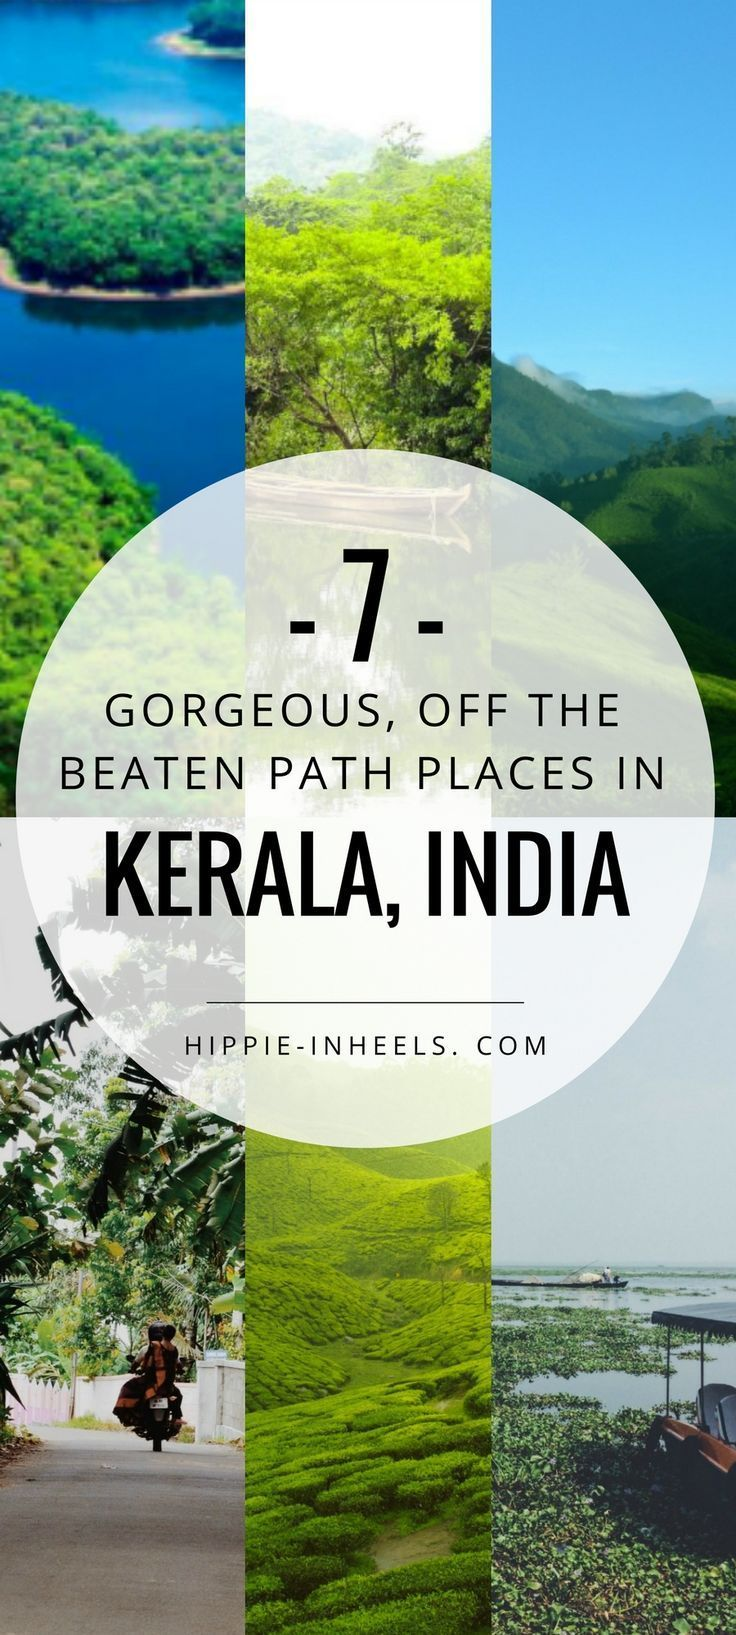 7 Offbeat Travel Destinations to Visit in Kerala T…